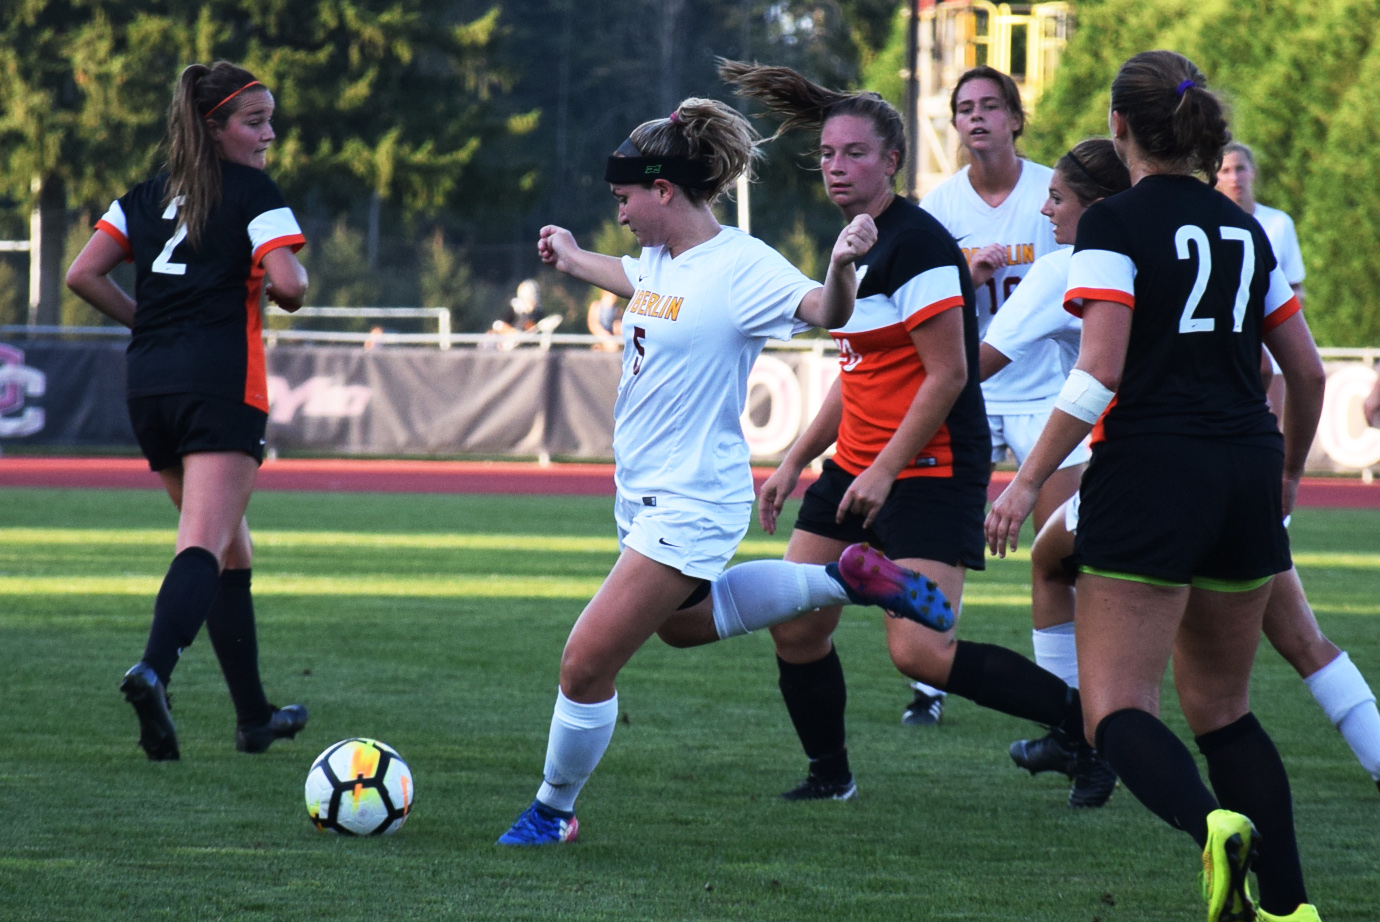 After eight years of chronic back pain, junior midfielder Jackie Brant was diagnosed with ankylosing spondylitis last spring. After months away from the game, she scored her first goal of the season Sept. 12 against Geneva College — her first game back in nearly a year.